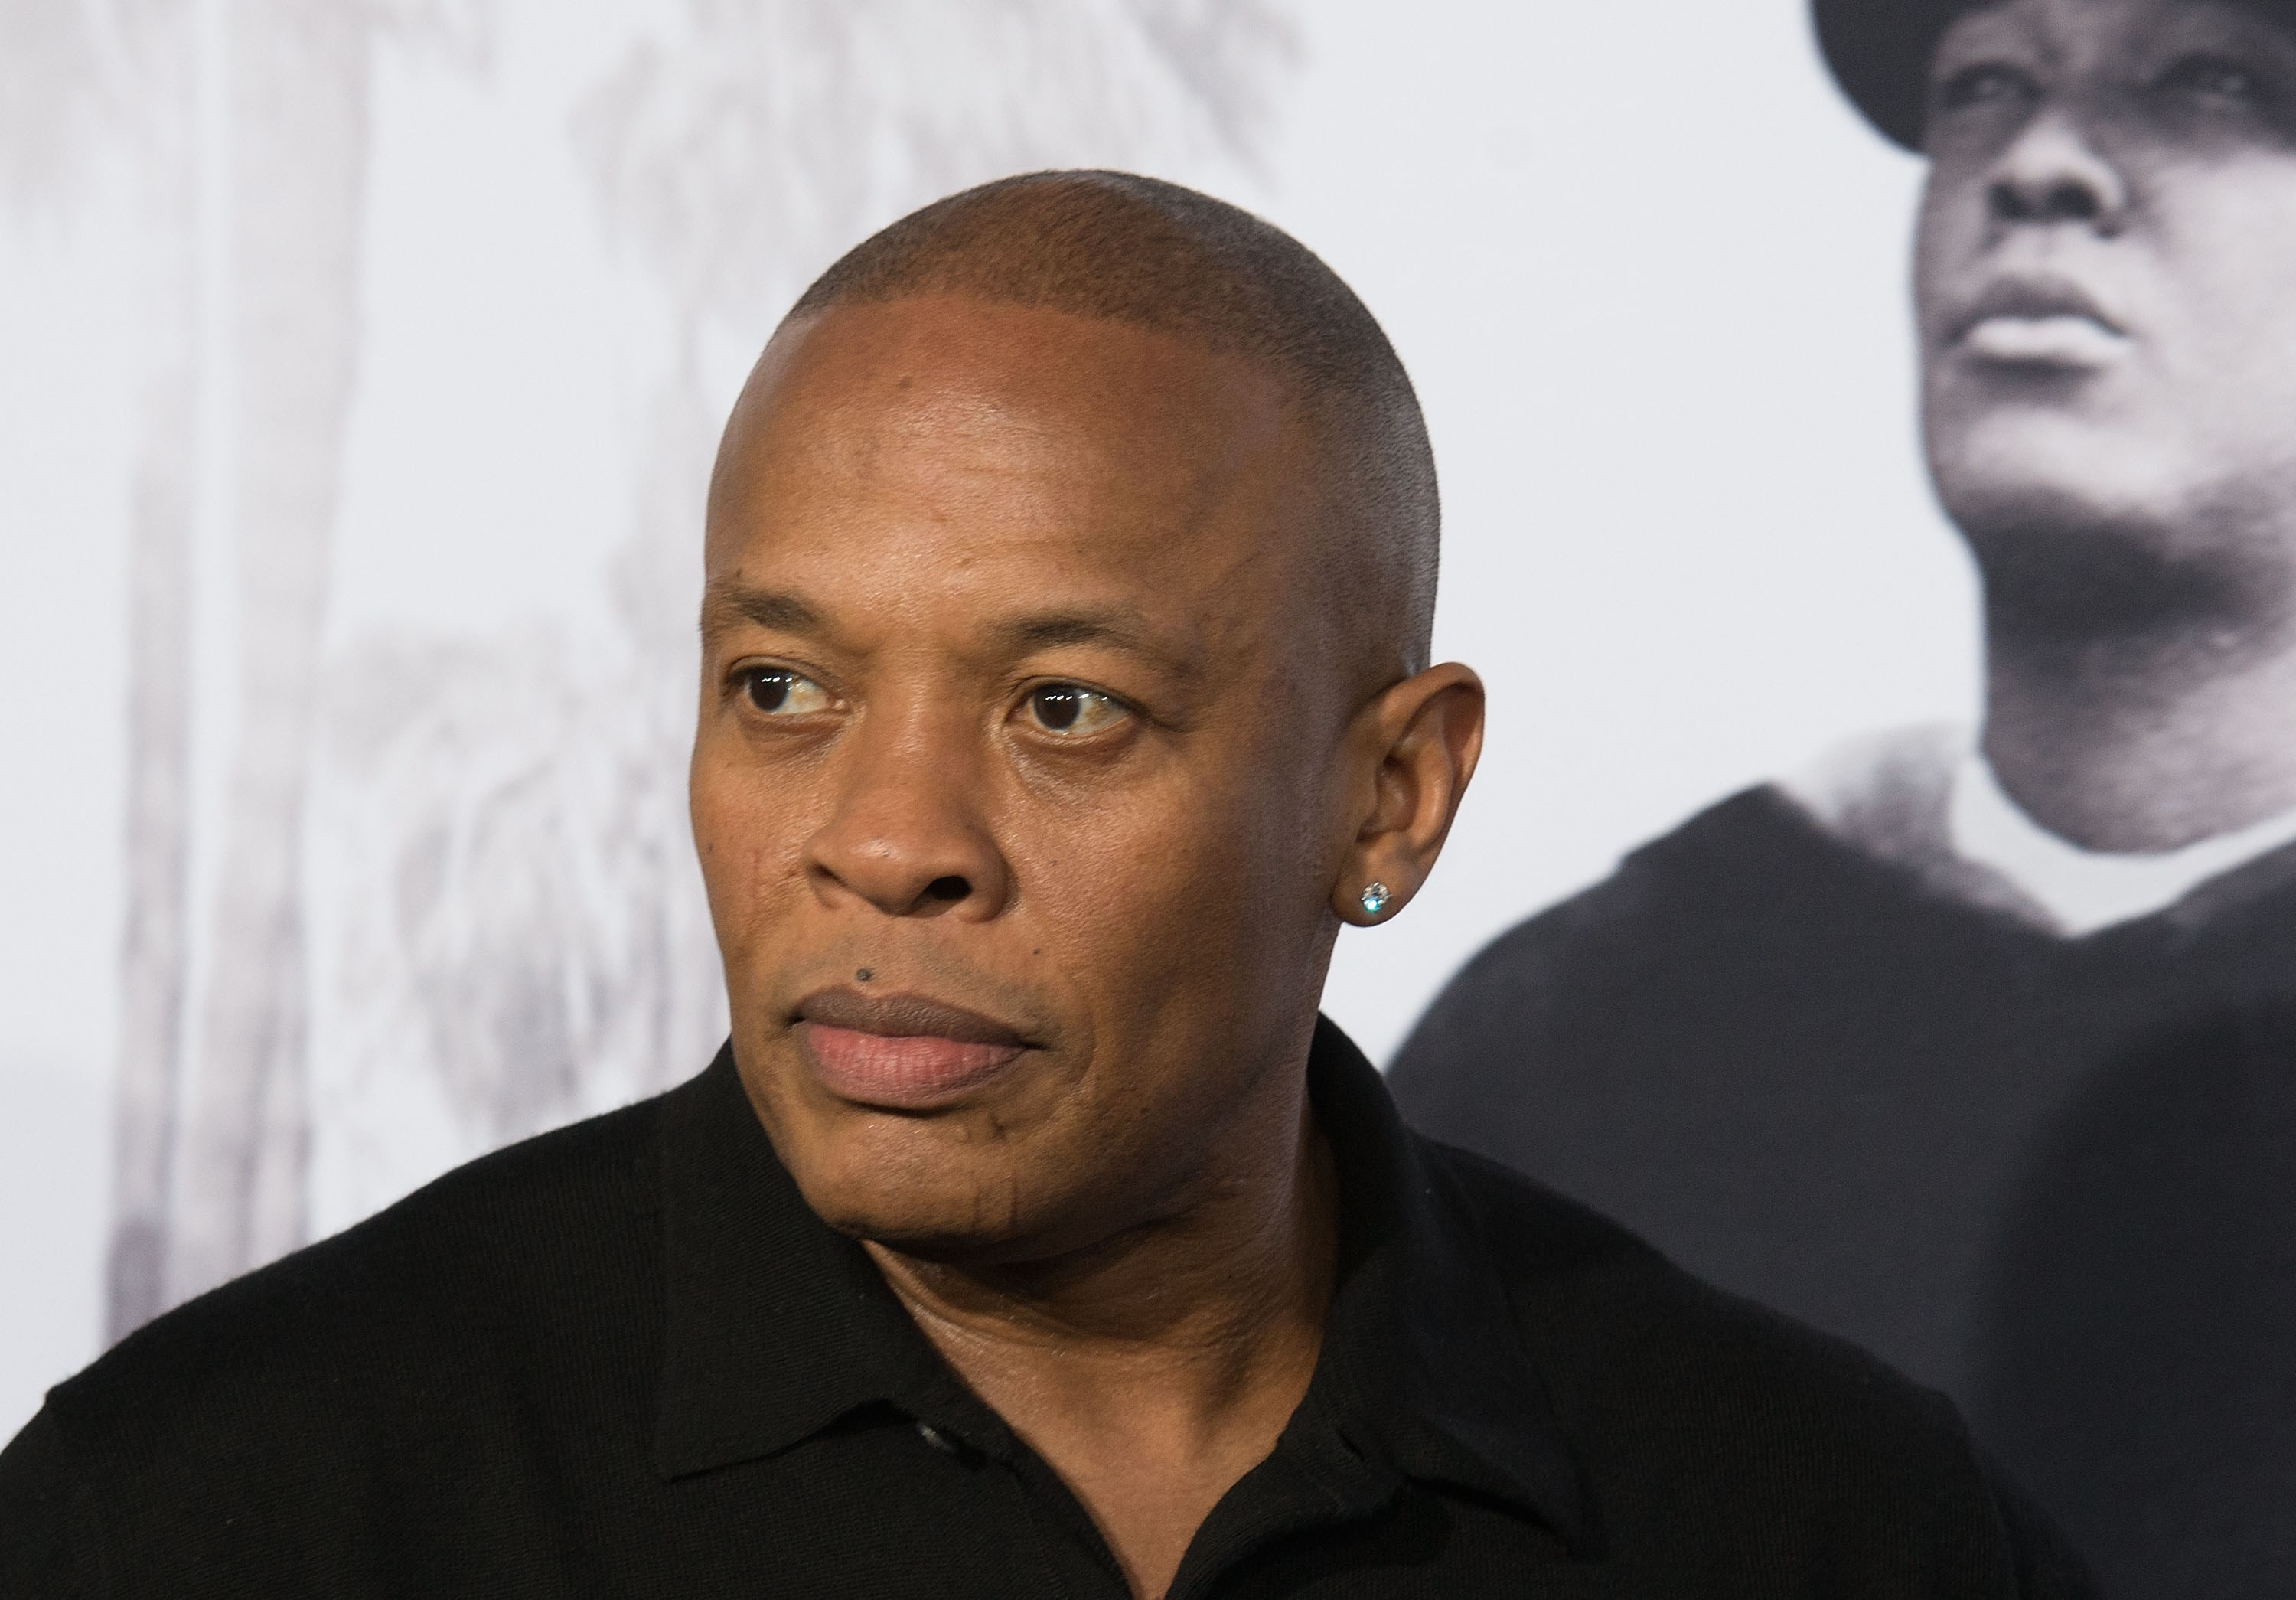 Dr. Dre Assault Apology: 'This Is Bigger Than Hip-Hop,' Victim Says